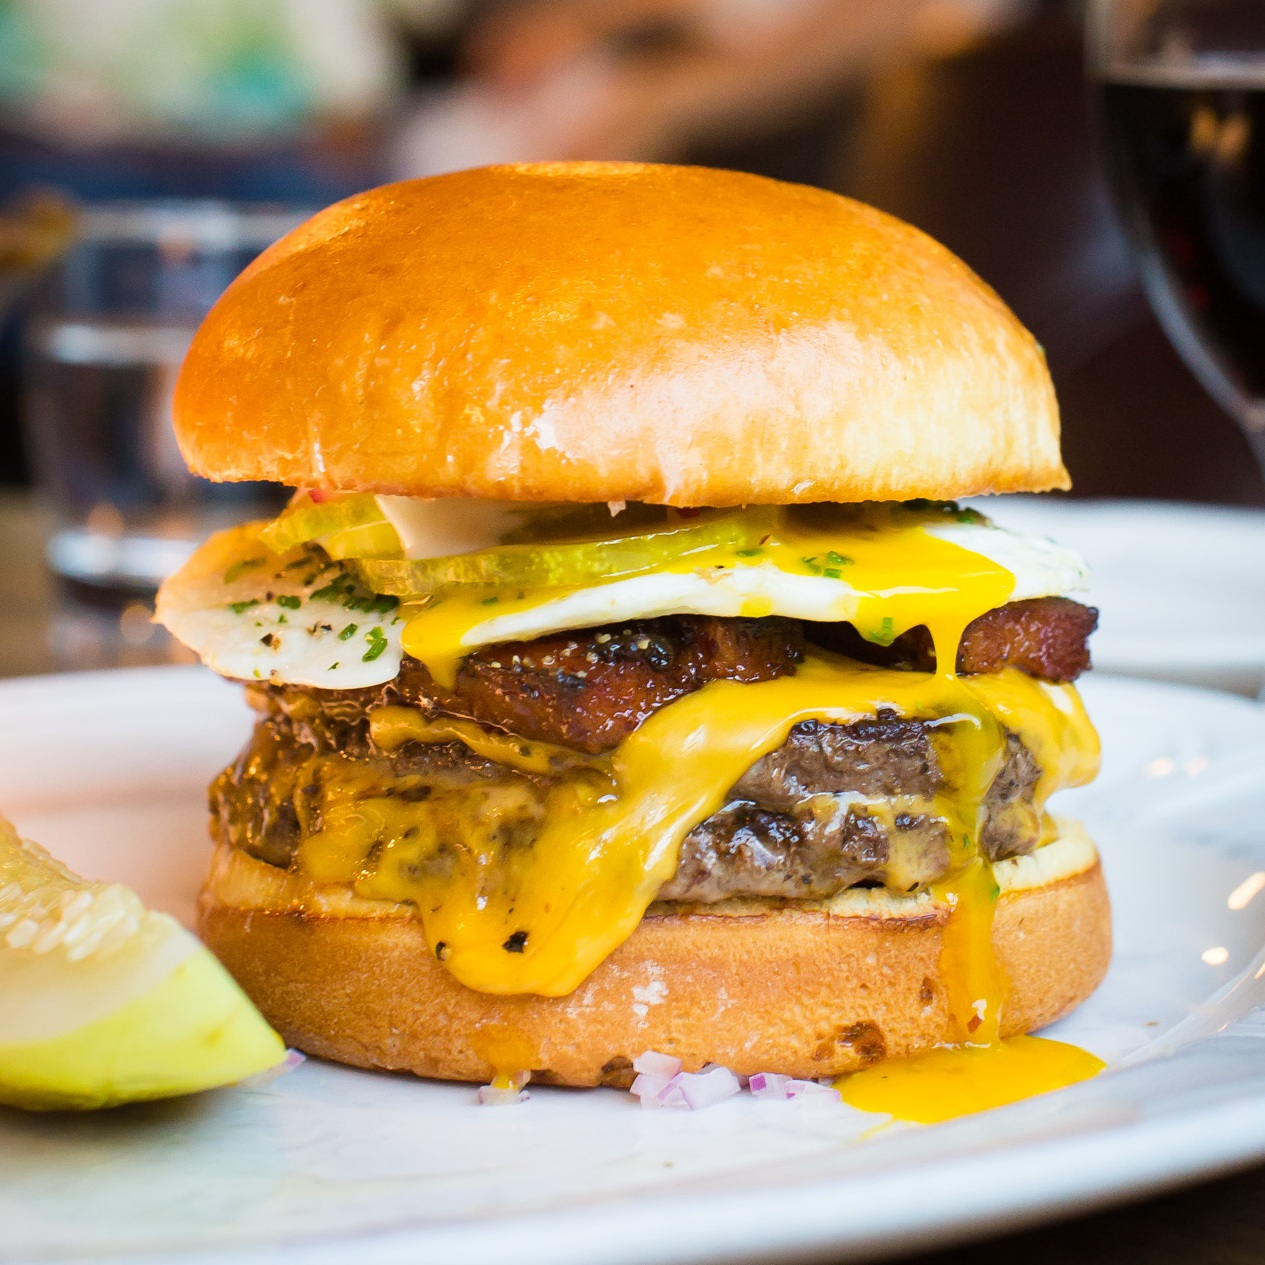 6. Au Cheval - $$, West Loop, Burgers, Brunch, Gluten-free